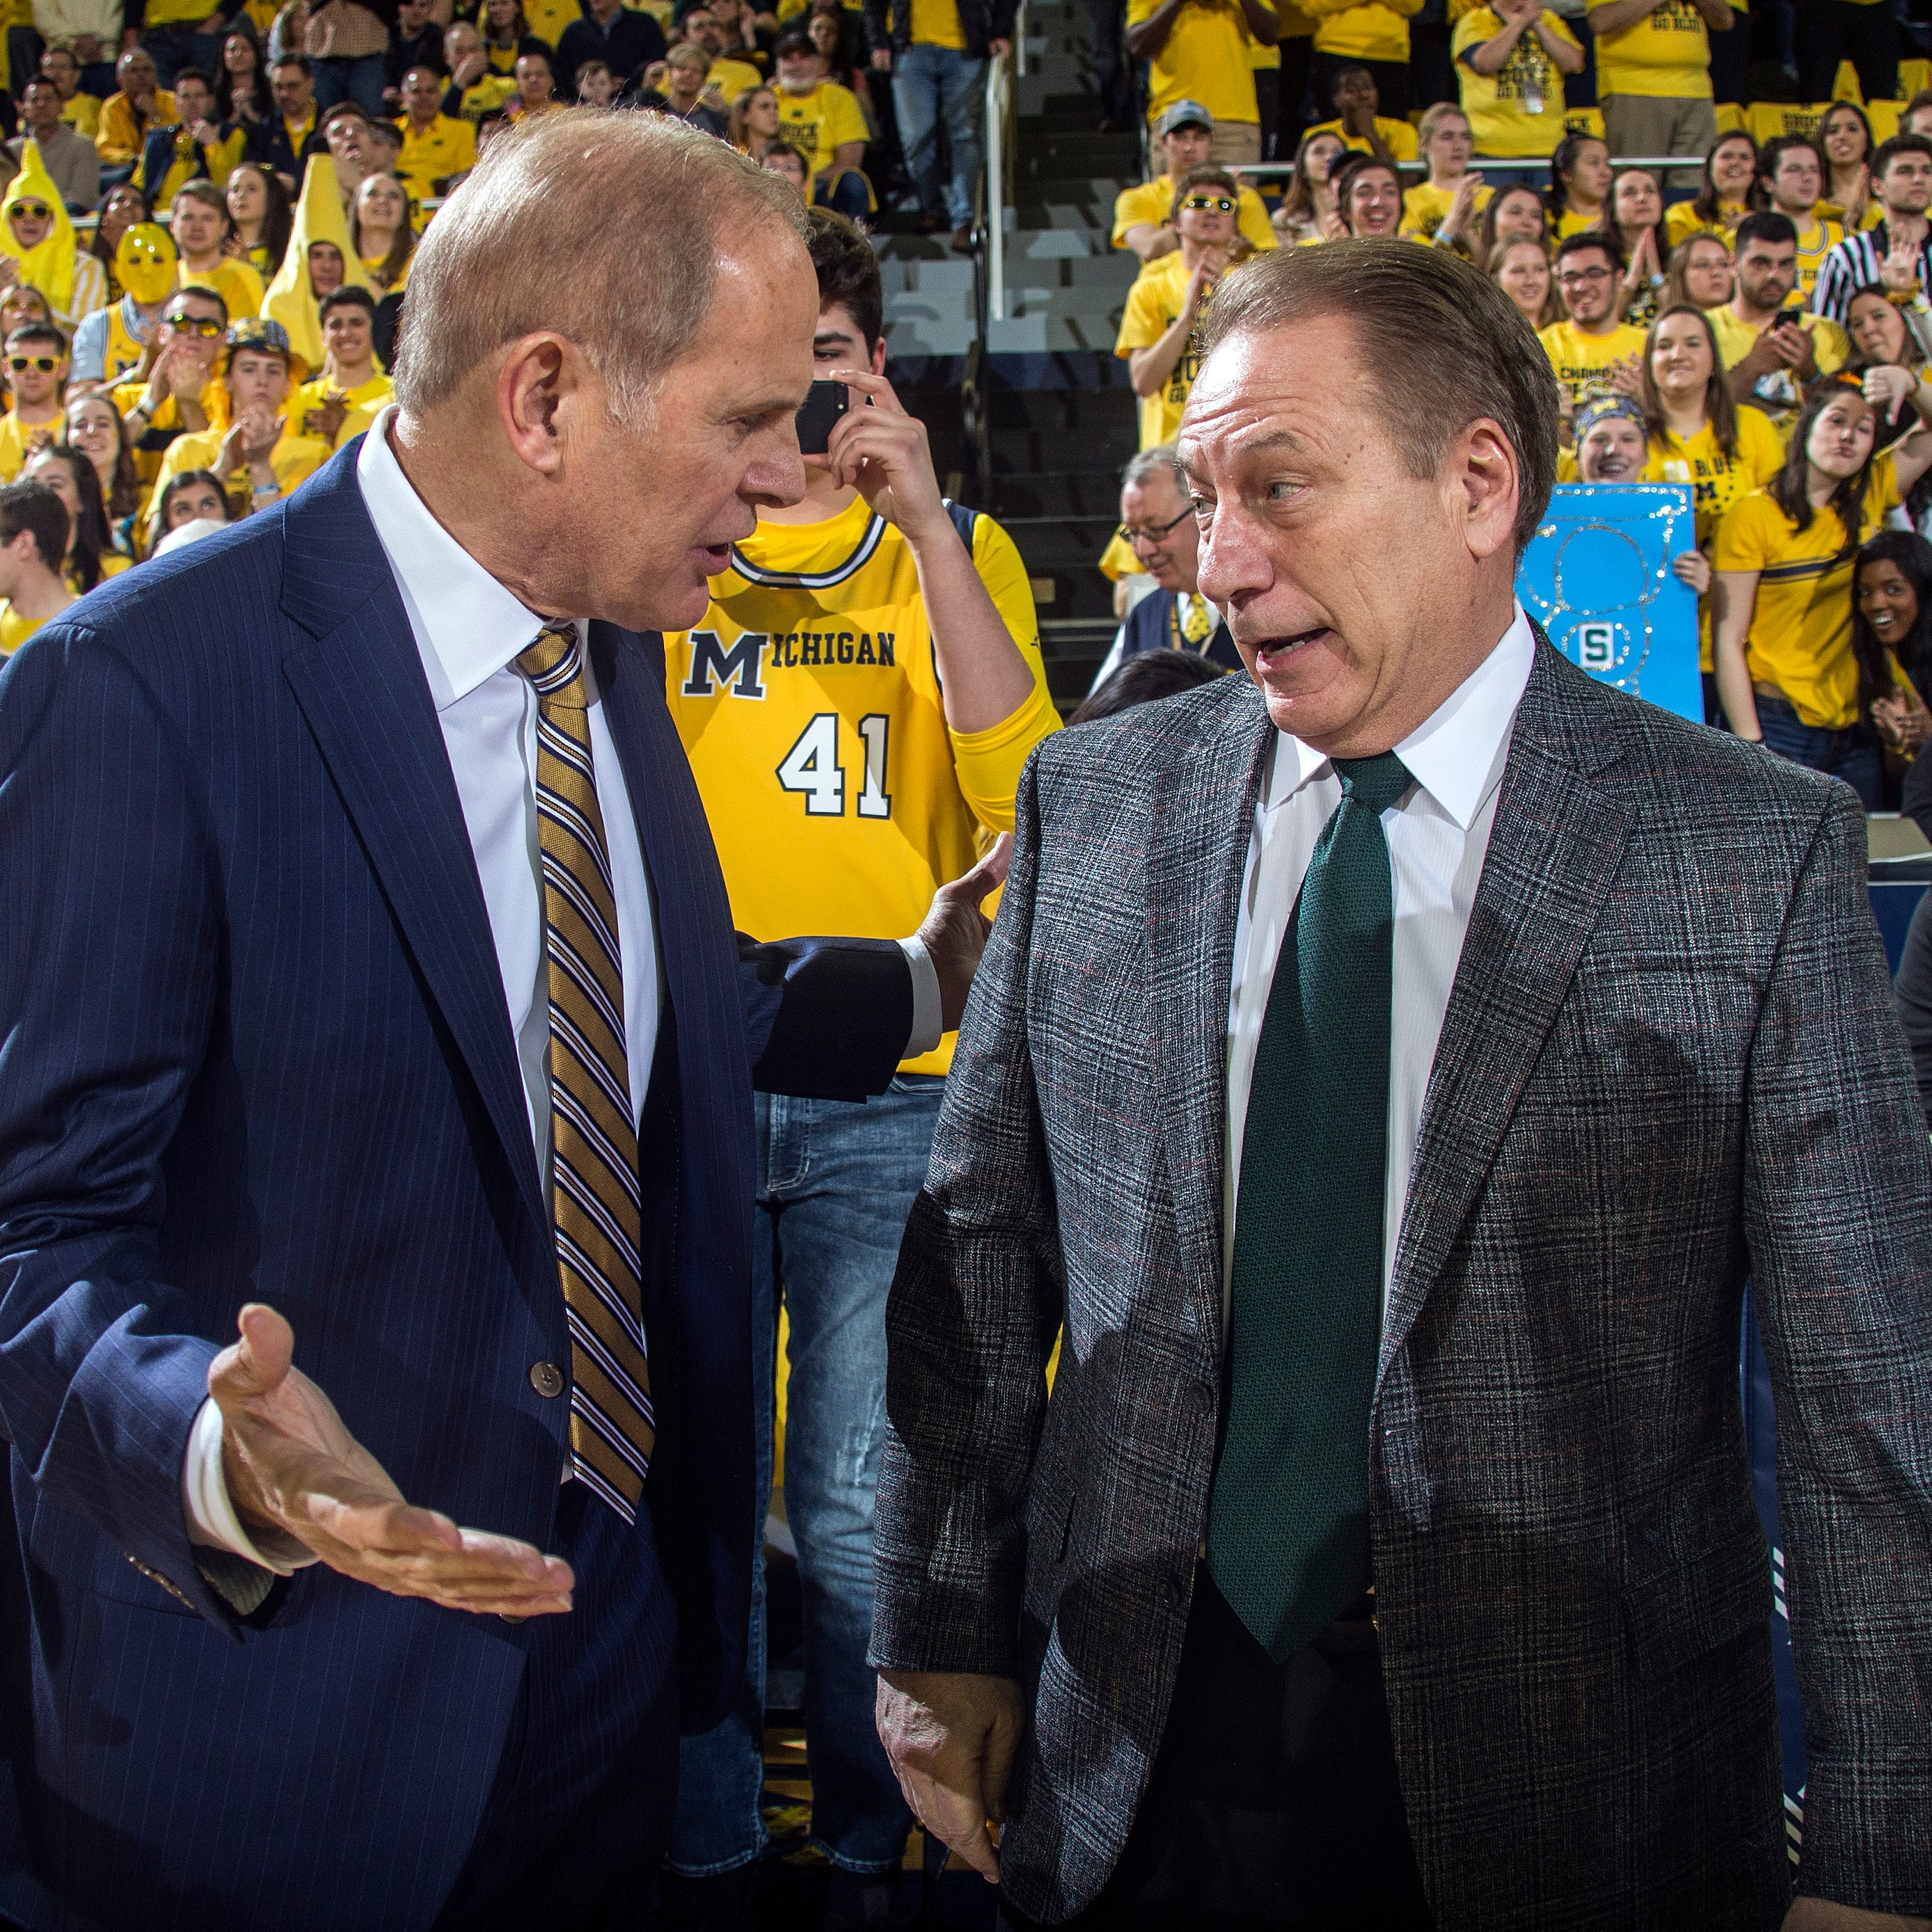 Michigan State vs. Michigan Part III poised to be best yet. Here's why